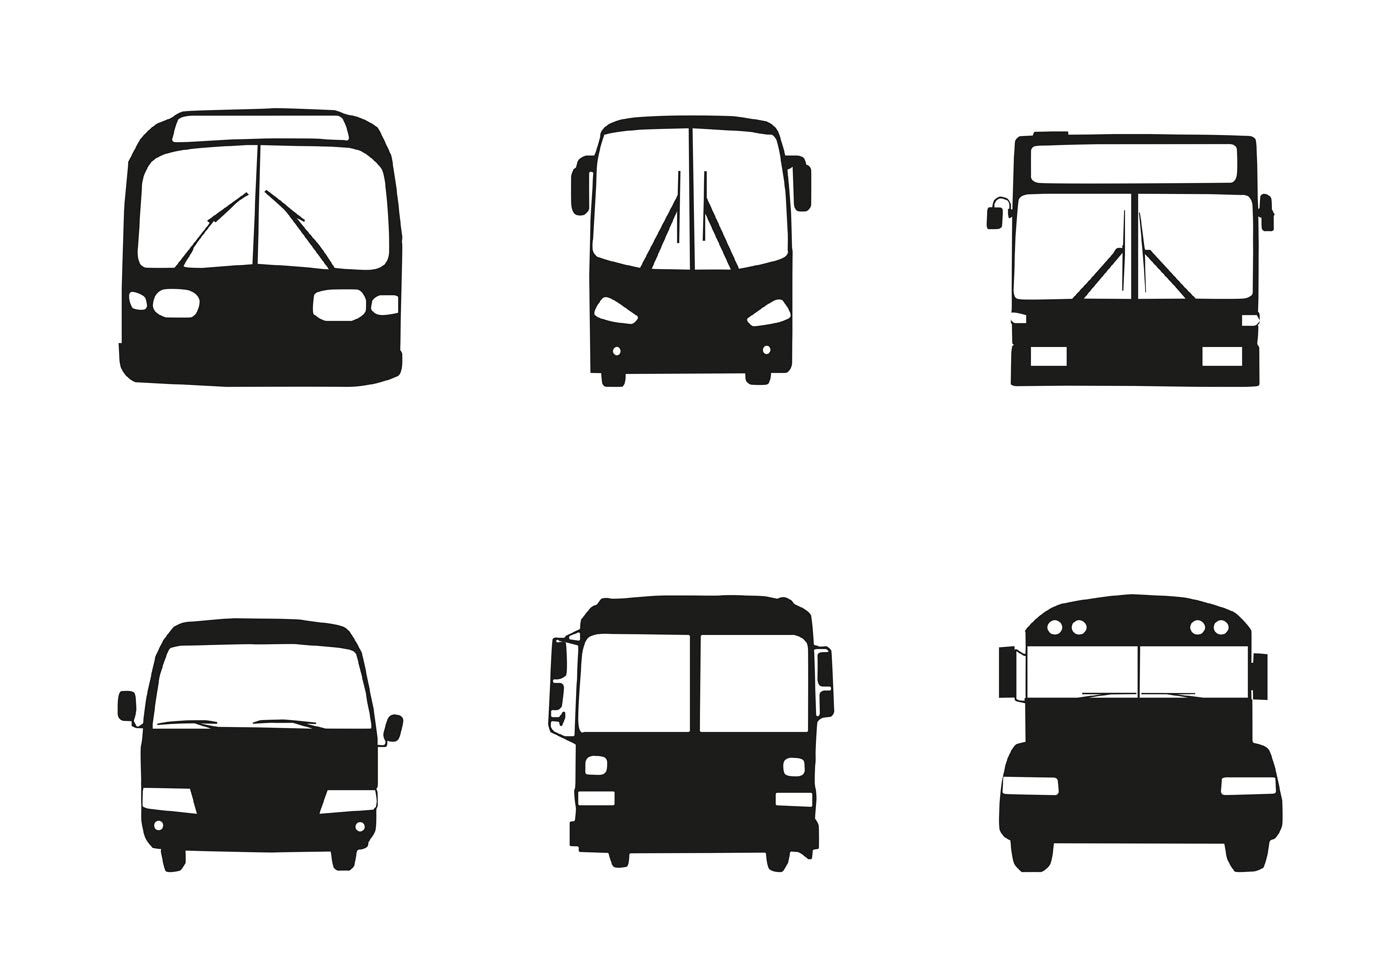 1400x980 Six Different Bus Car Silhouette Front On A White Background